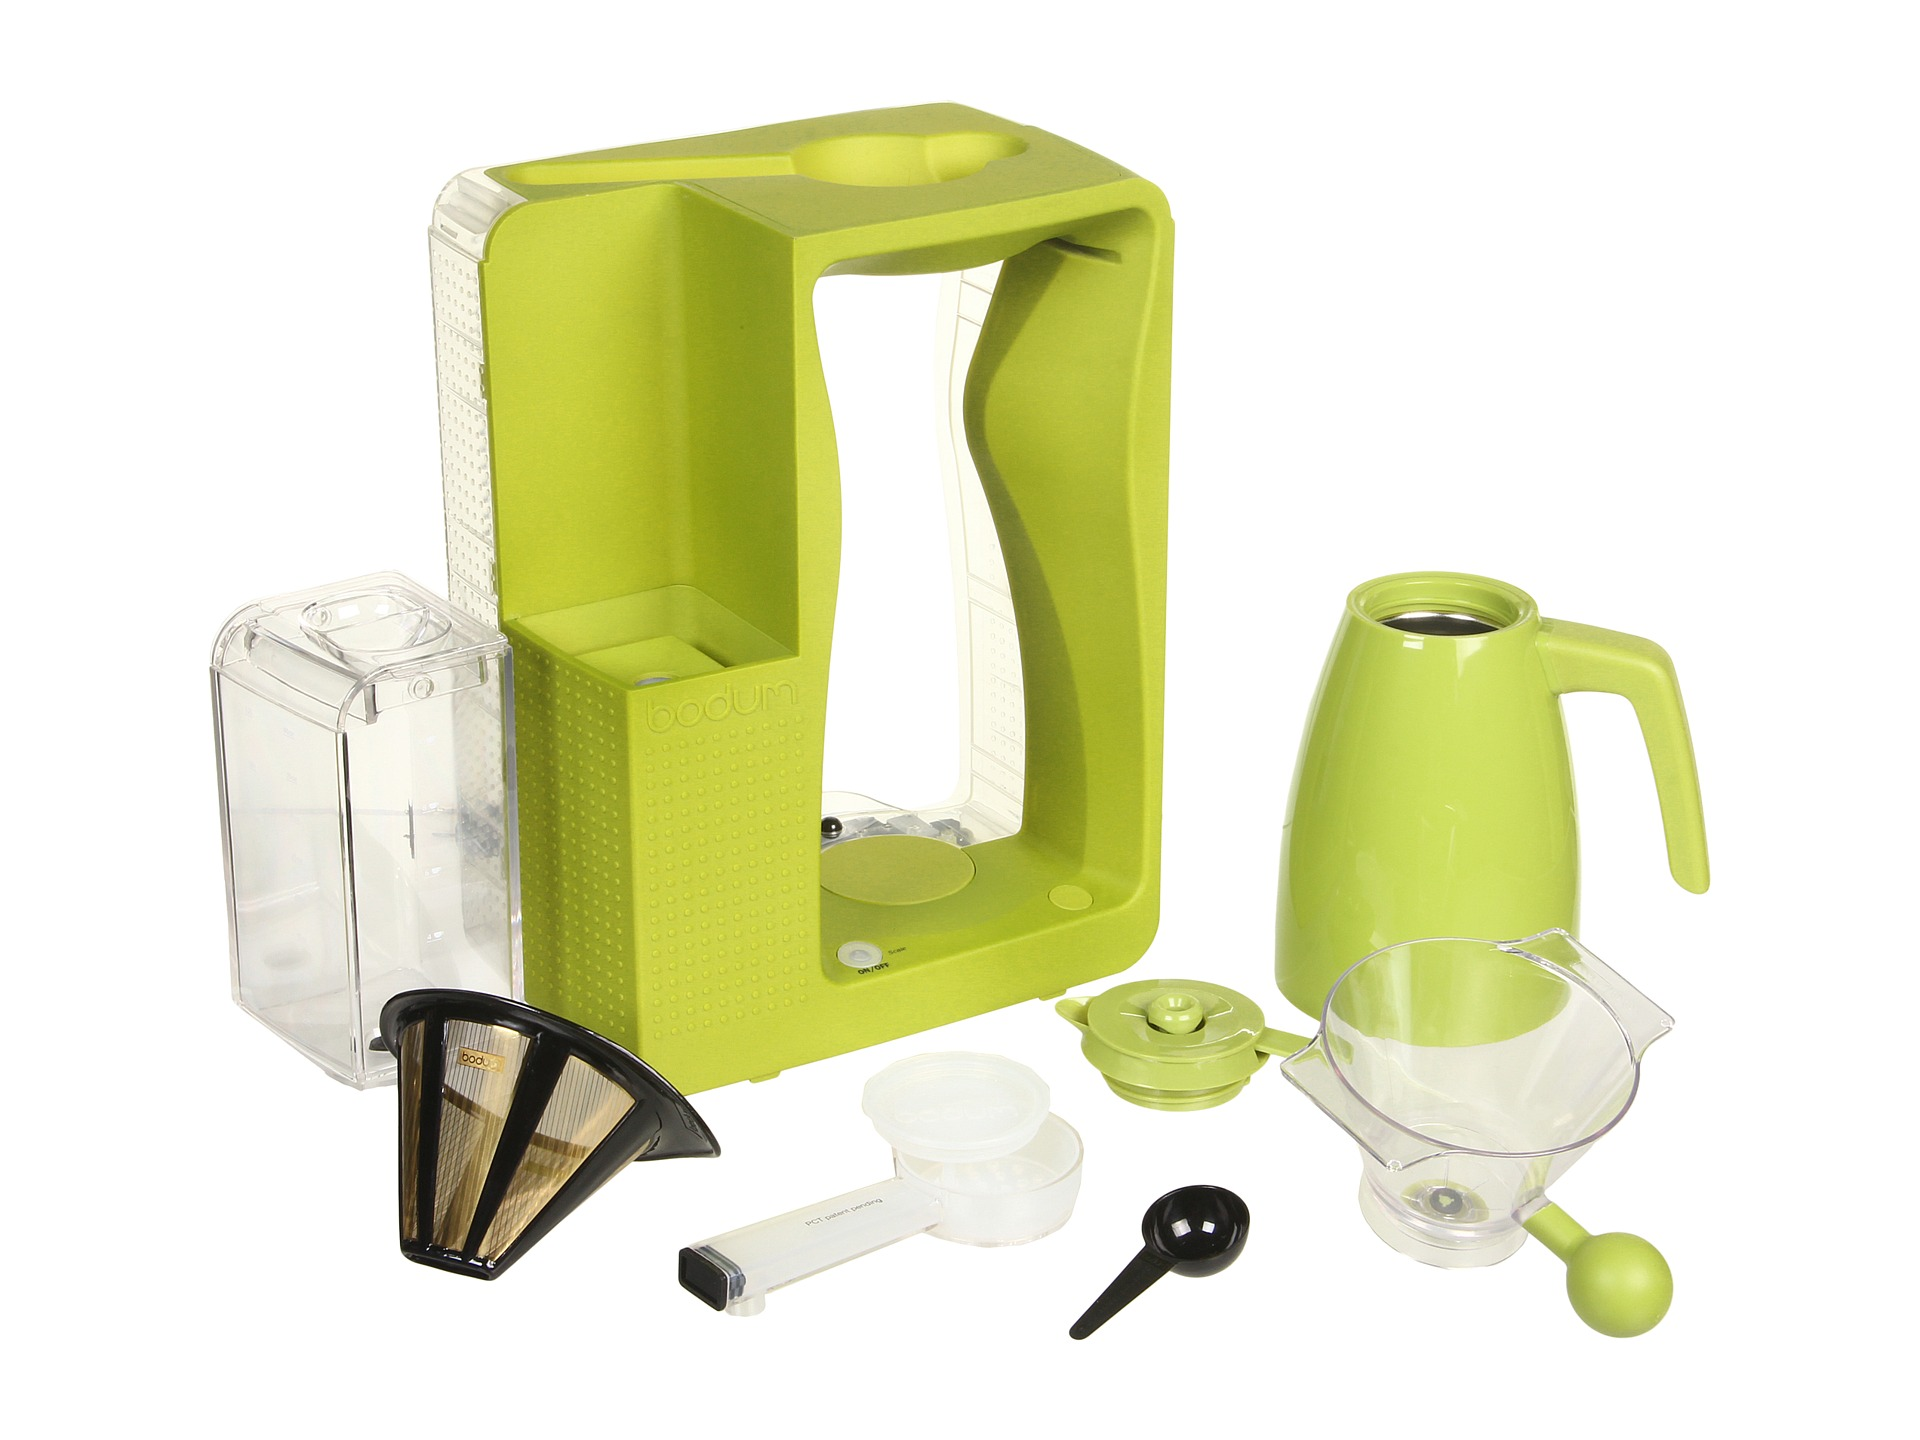 Bodum Bistro Pour Over Electric Coffee Maker : Bodum Bistro Pour Over Electric Coffee Maker Green Shipped Free at Zappos